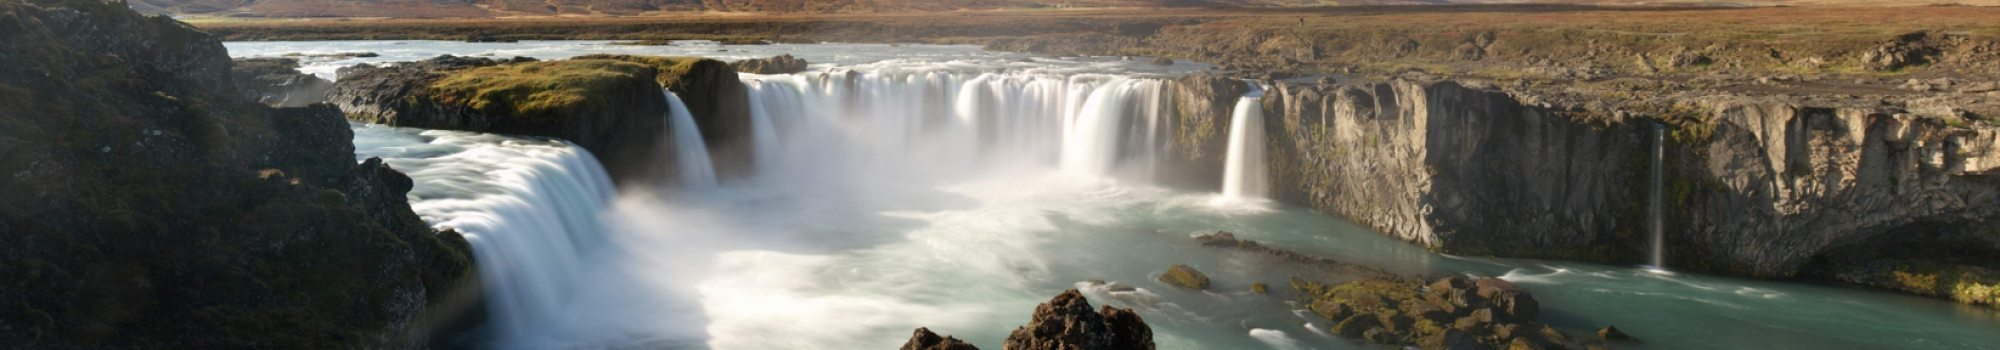 Godafoss-waterfall-Iceland-tour